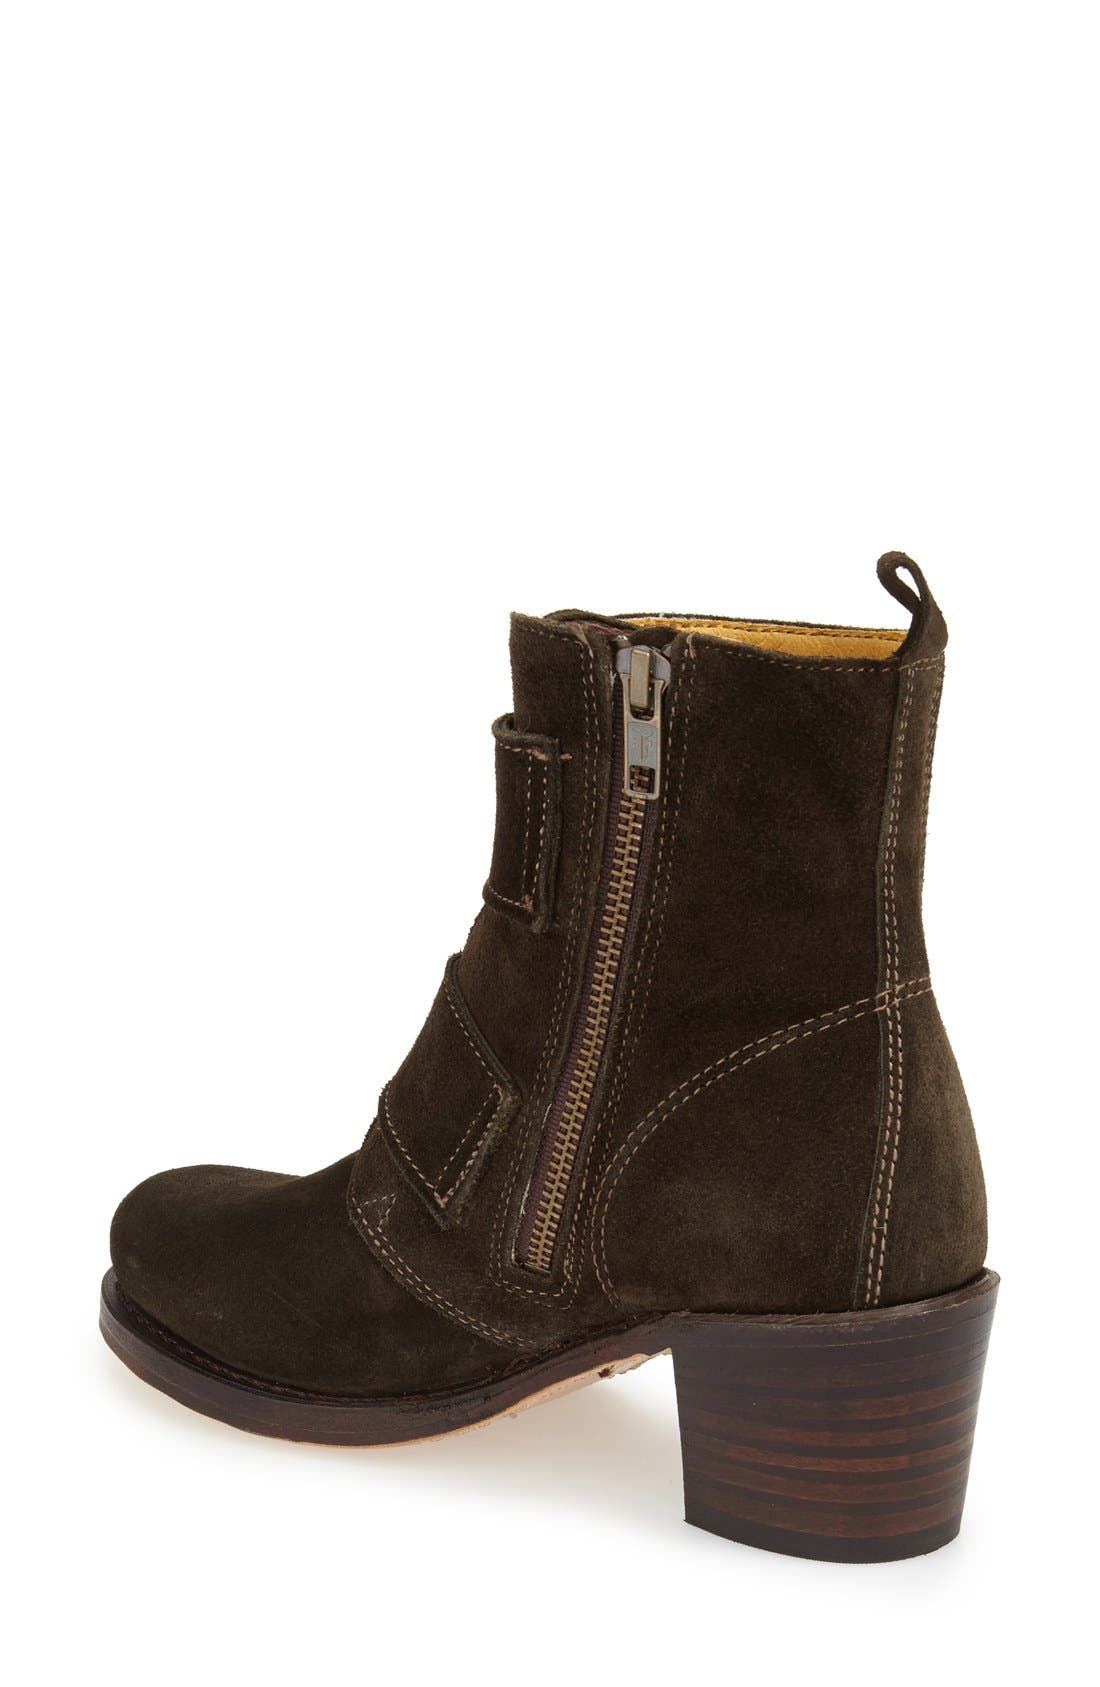 'Sabrina' Double Buckle Boot,                             Alternate thumbnail 8, color,